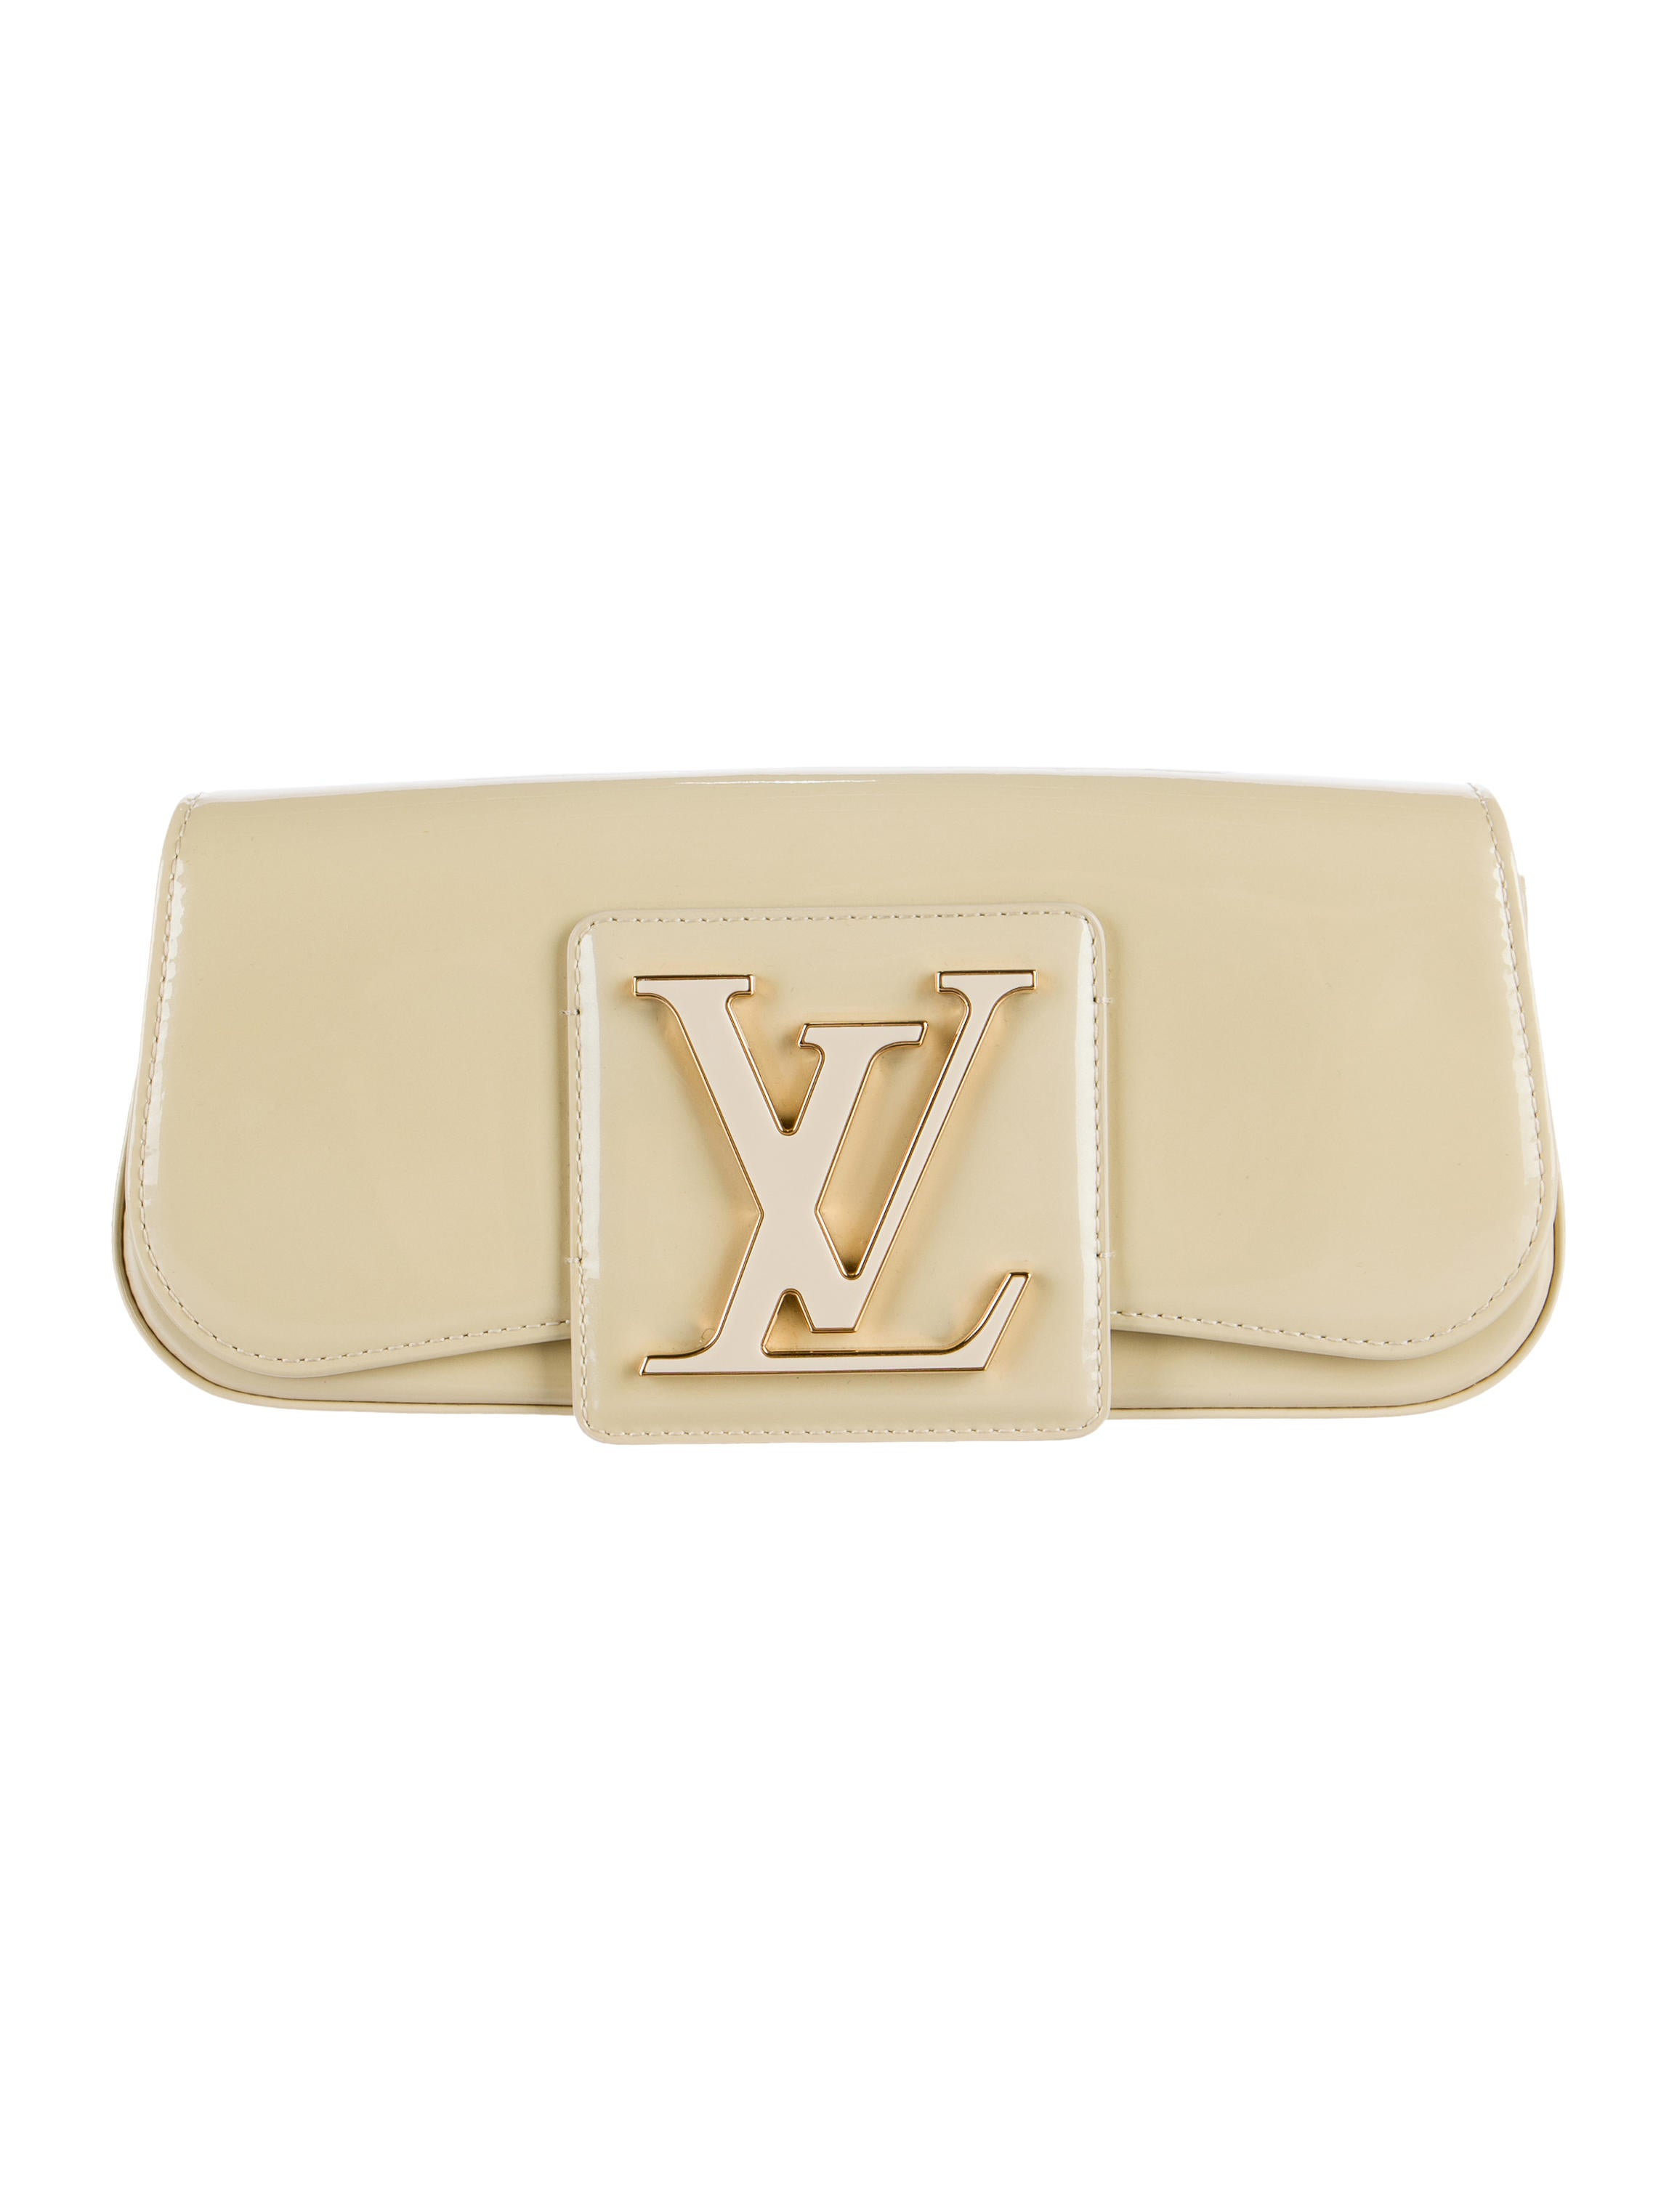 43f794b38a Louis Vuitton Vernis Sobe Clutch - Handbags - LOU117964 | The RealReal